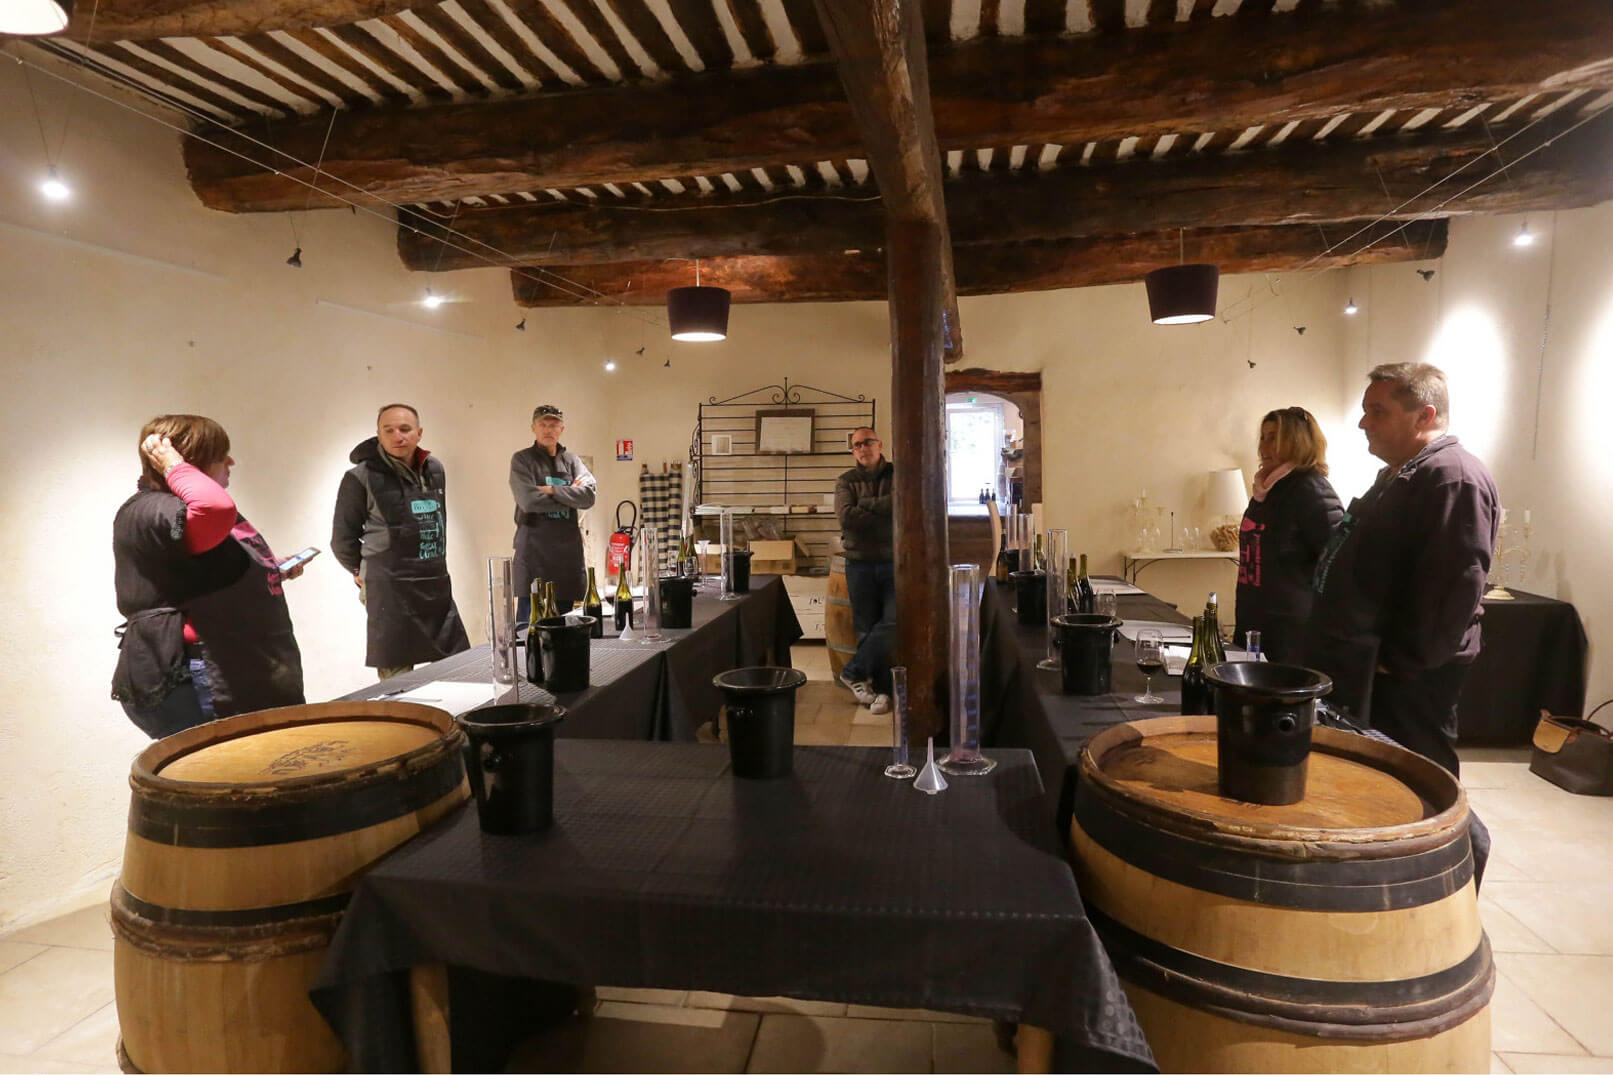 Guided tours and tastings at Vaucluse vineyards @ Hocquel